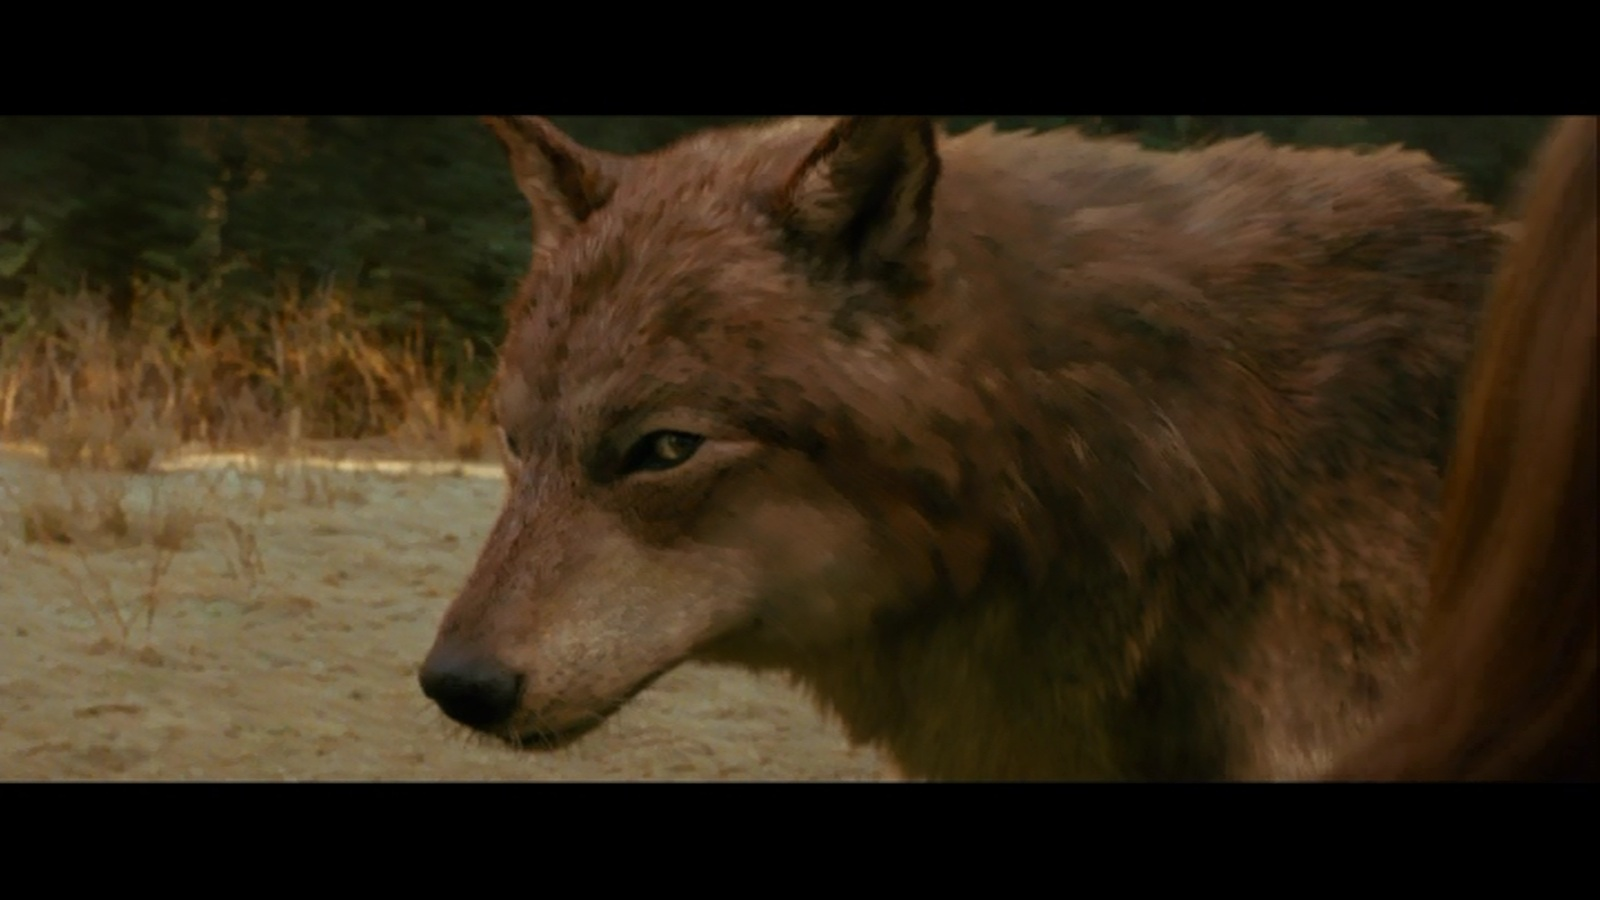 New moon wolf pack in wolf form